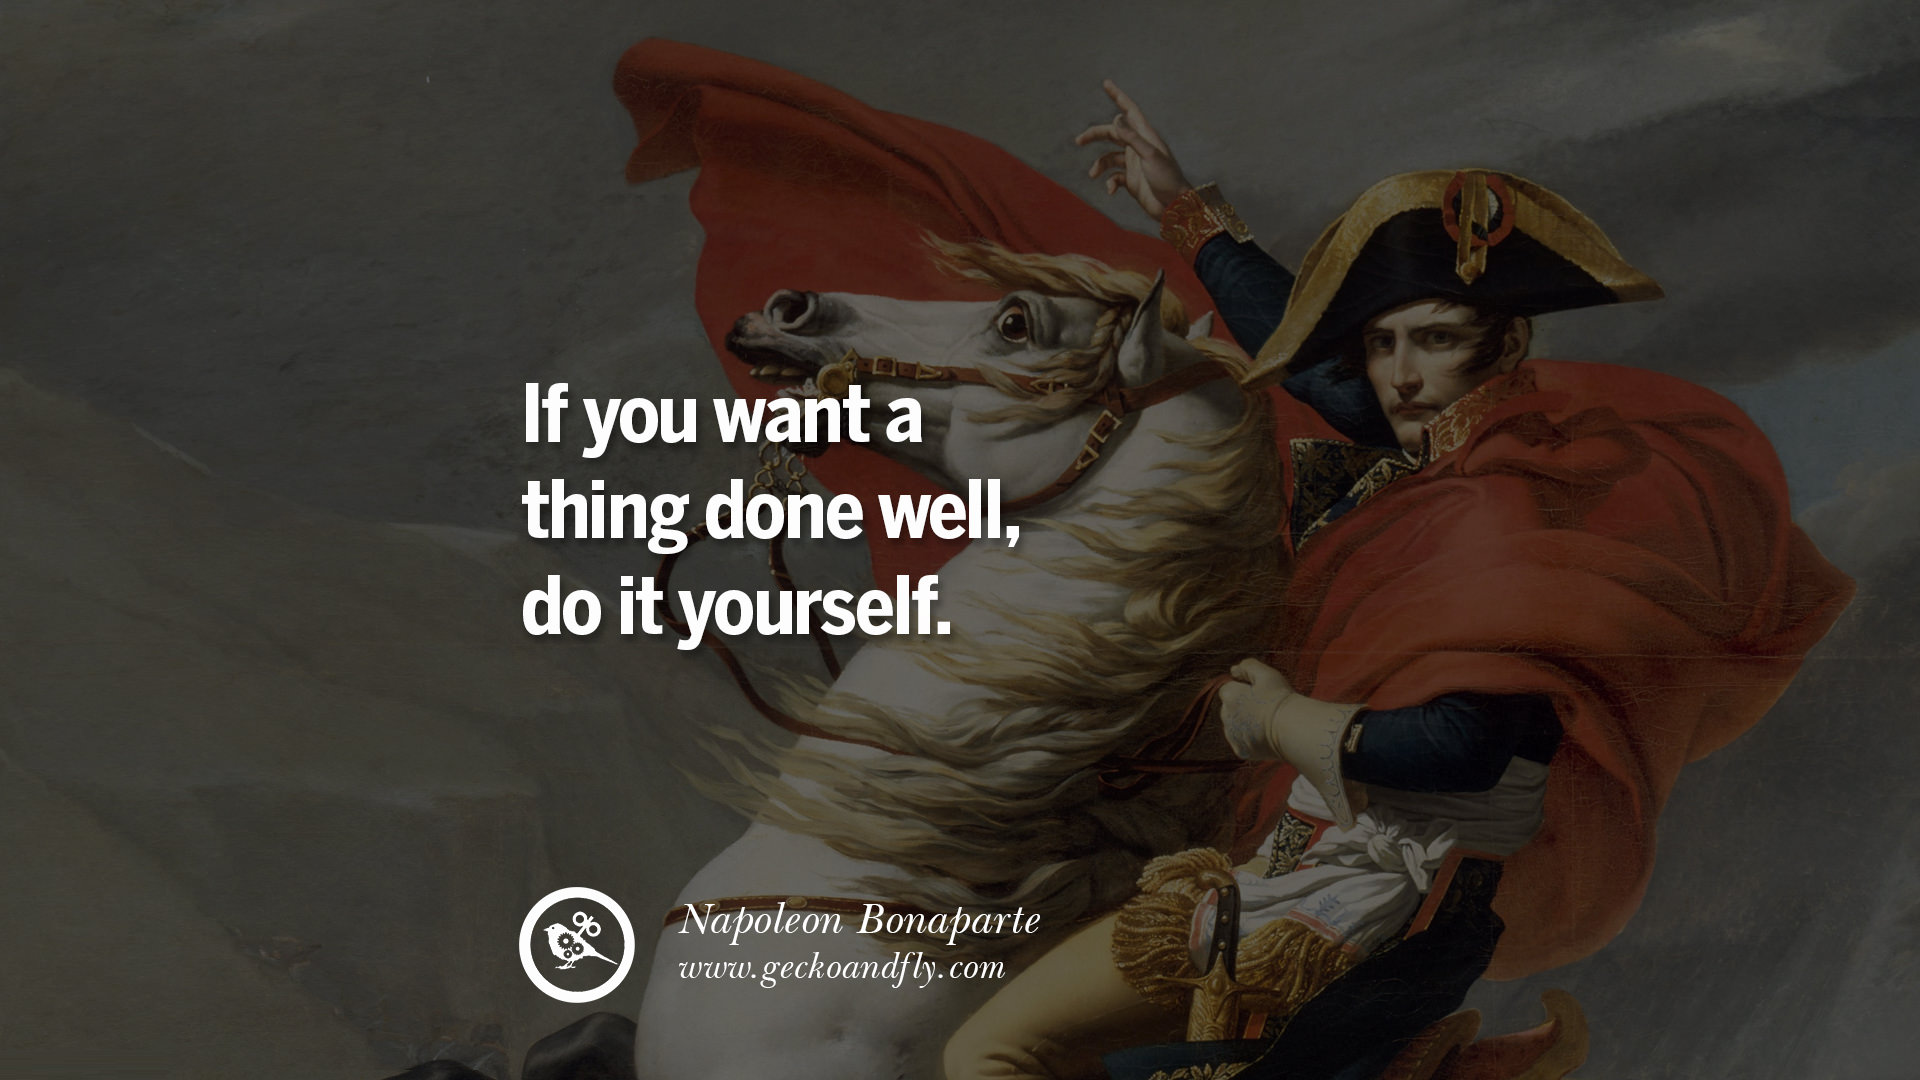 40 napoleon bonaparte quotes on war religion politics and if you want a thing done well do it yourself solutioingenieria Image collections